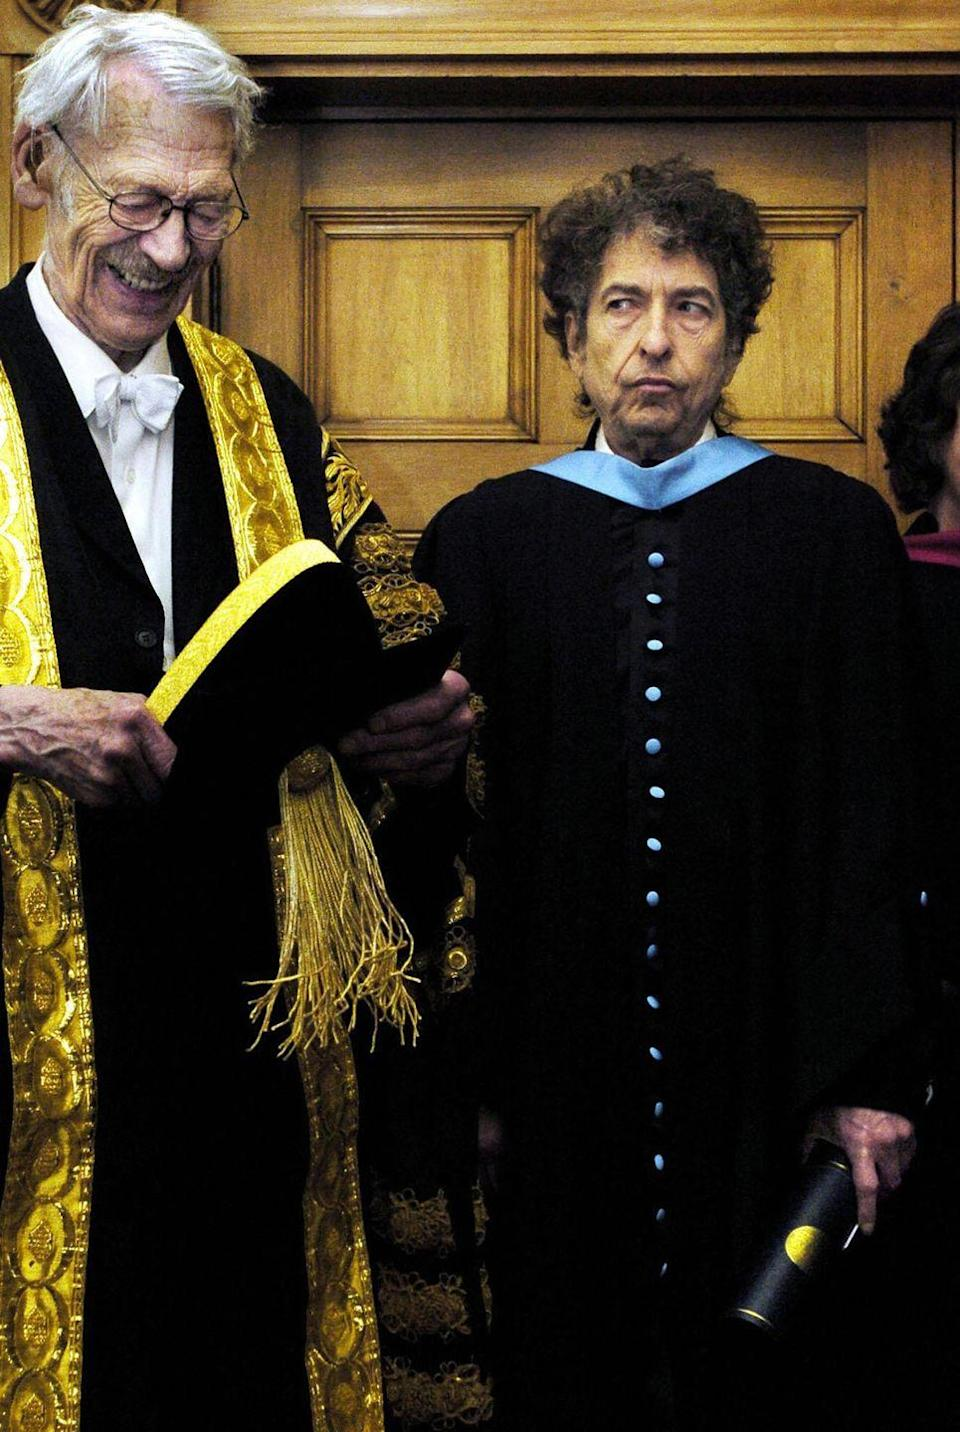 <p>Bob Dylan poses at the University of St. Andrews on June 23, 2004, after he received an honorary degree of Doctor of Music from Sir Kenneth Dover, Chancellor of the university.</p>